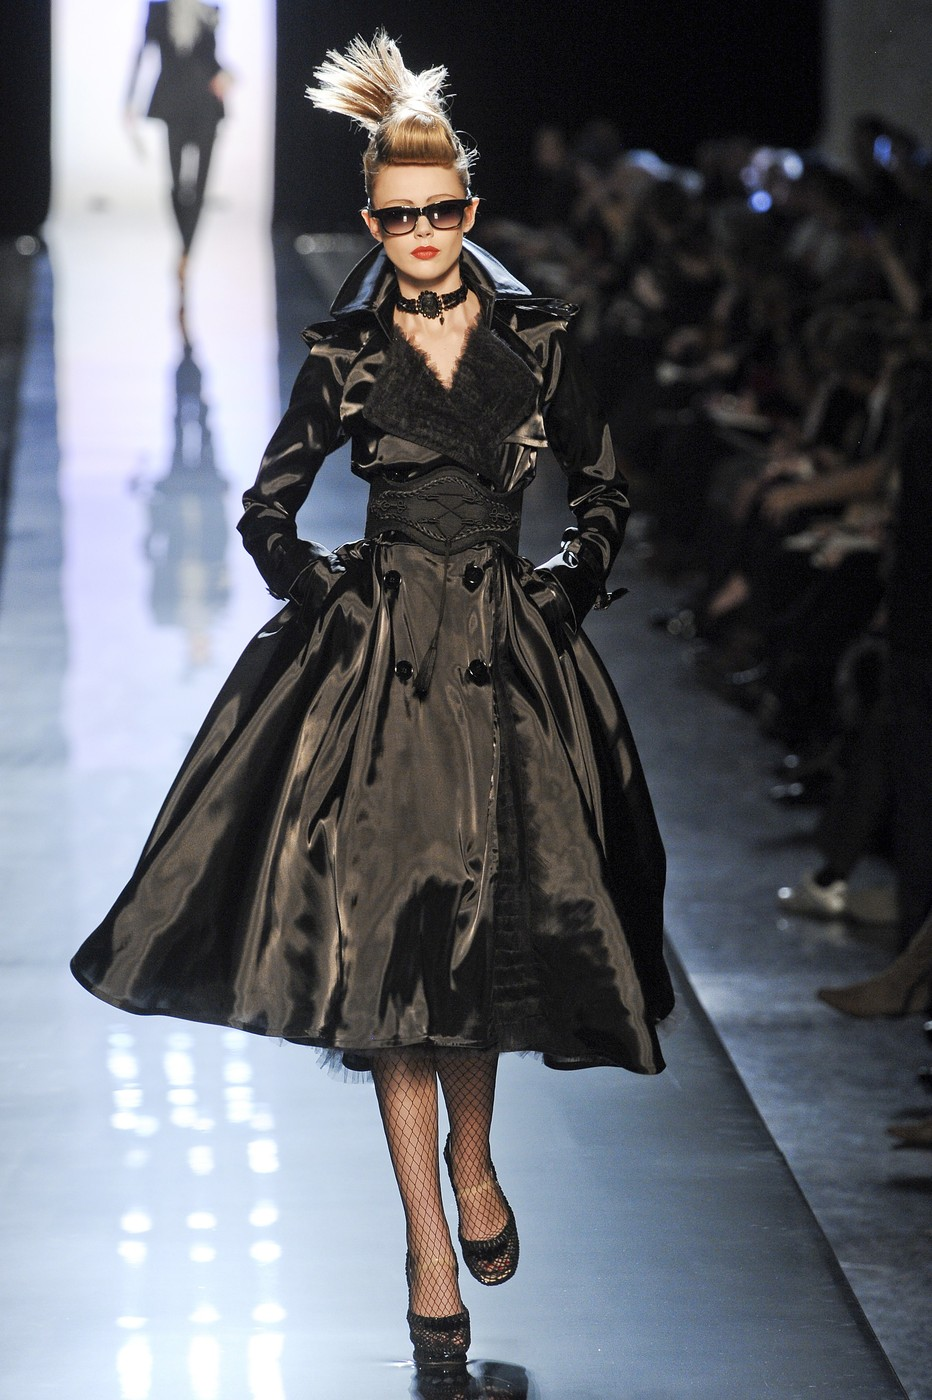 jean paul gaultier at couture spring 2011 livingly. Black Bedroom Furniture Sets. Home Design Ideas